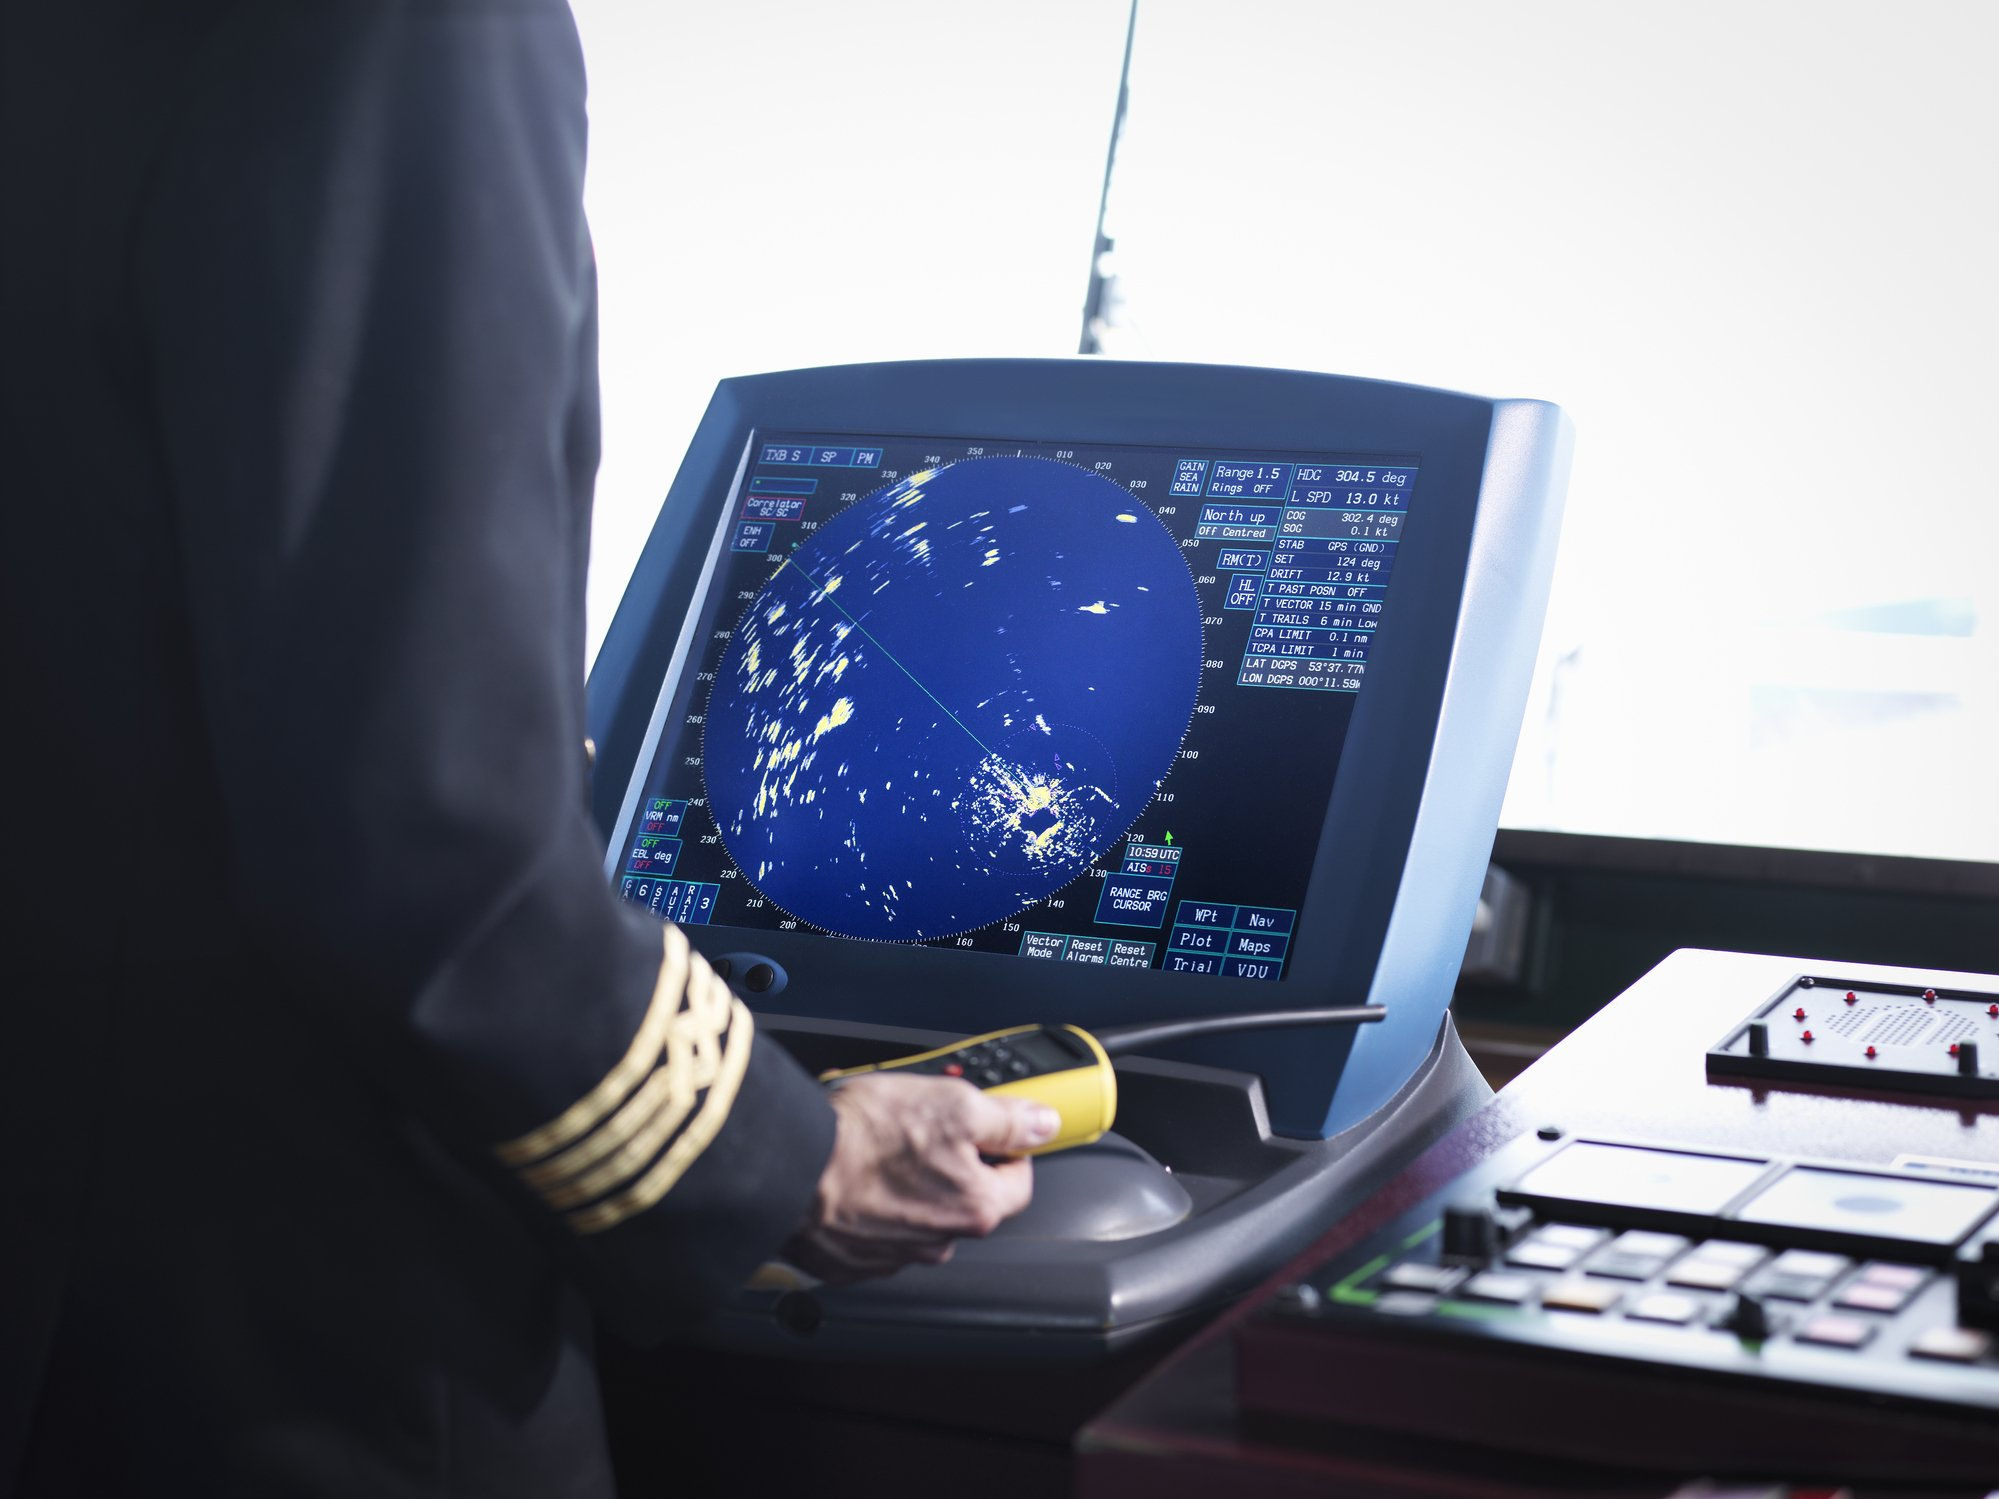 Ships captain working on bridge with radar screen, close up | Photo: Getty Images